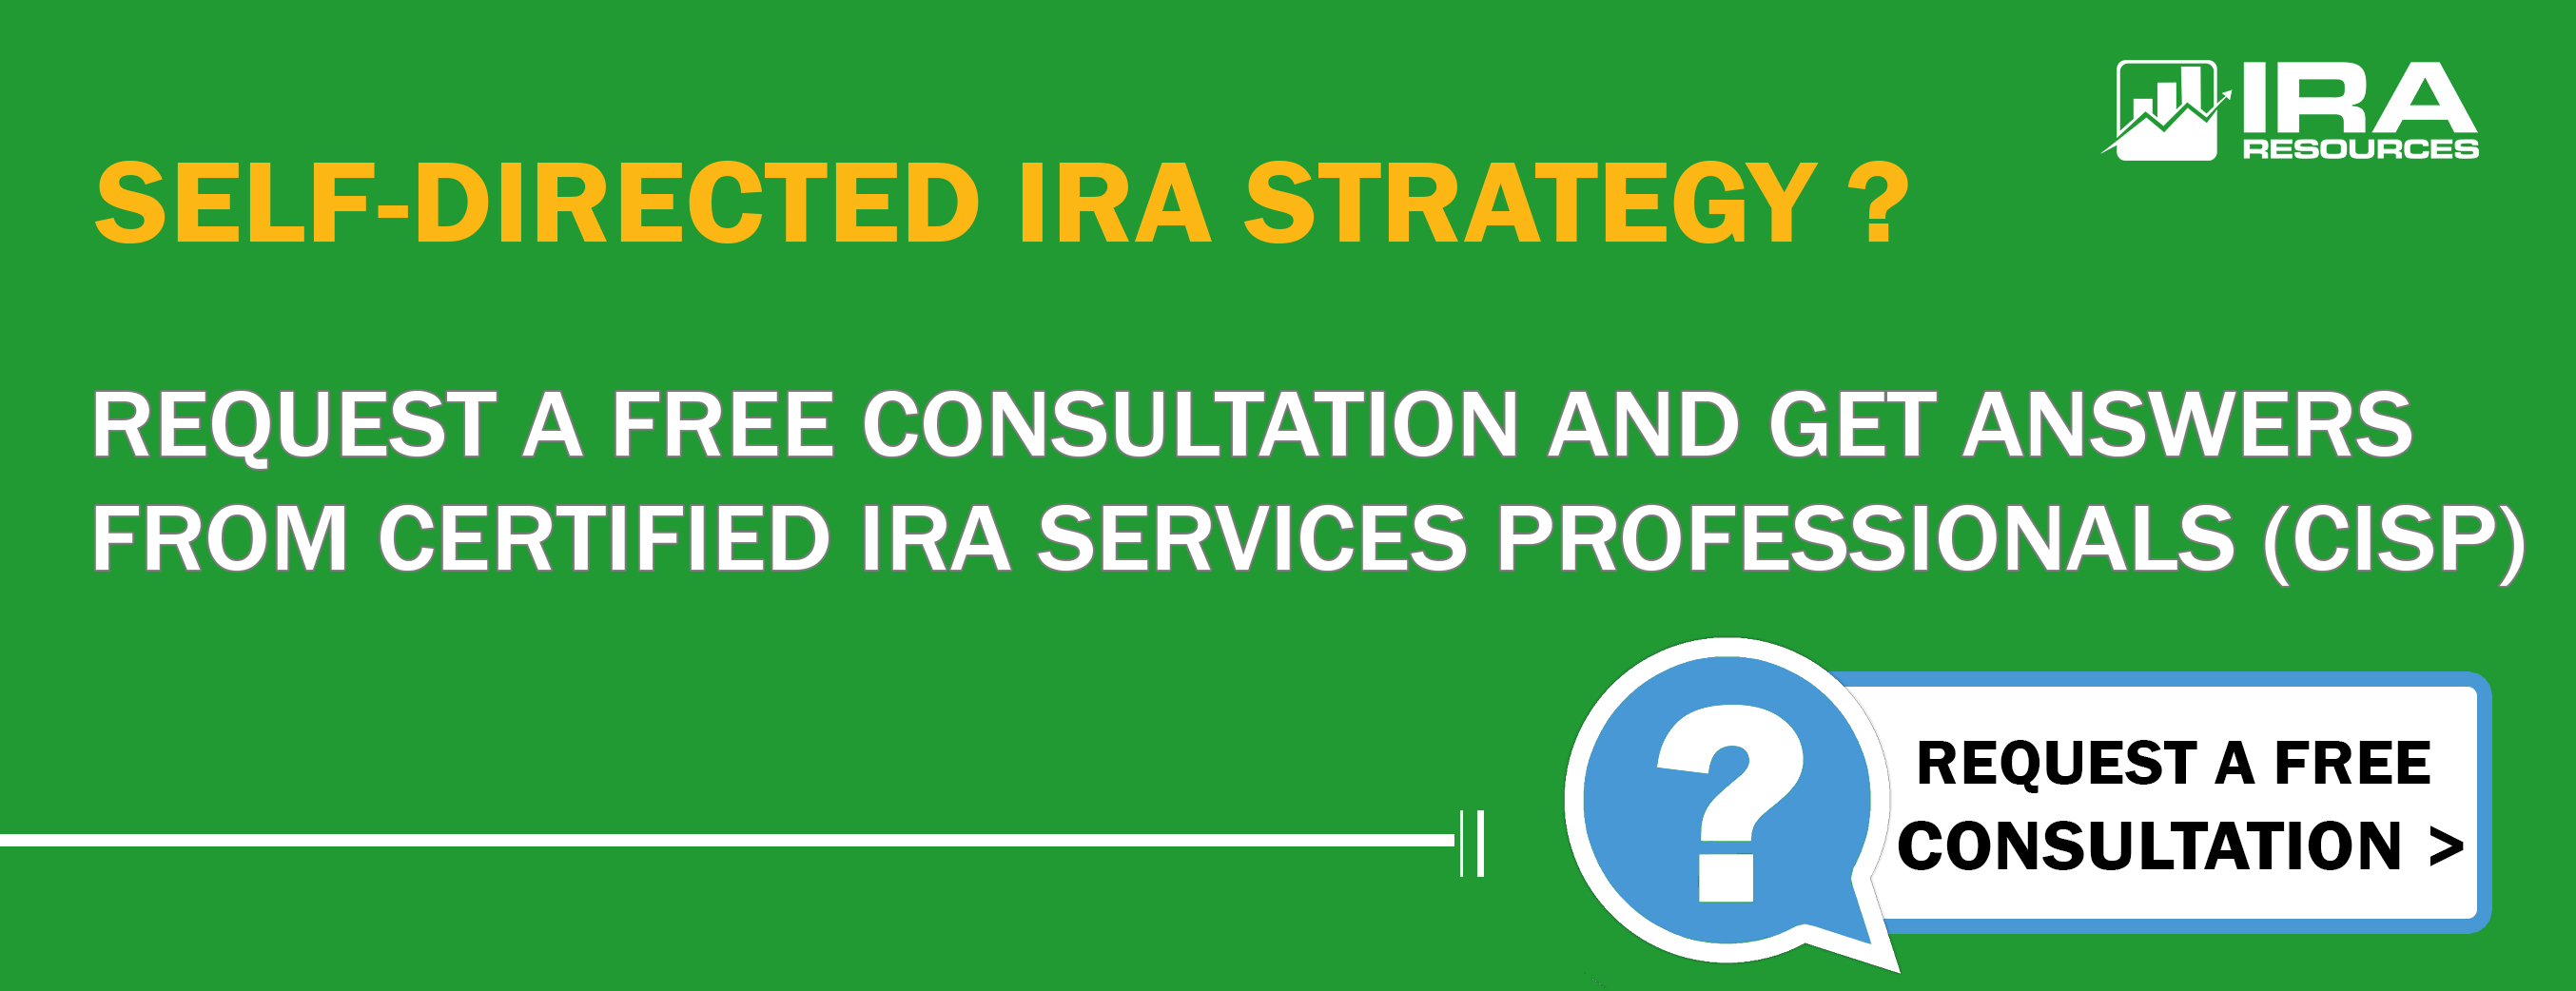 "White and yellow text on green background, reading ""Self-Directed IRA Strategy? Request a free consultation and get answers from a Certified IRA Services Professionals (CISP) from IRA Resources"